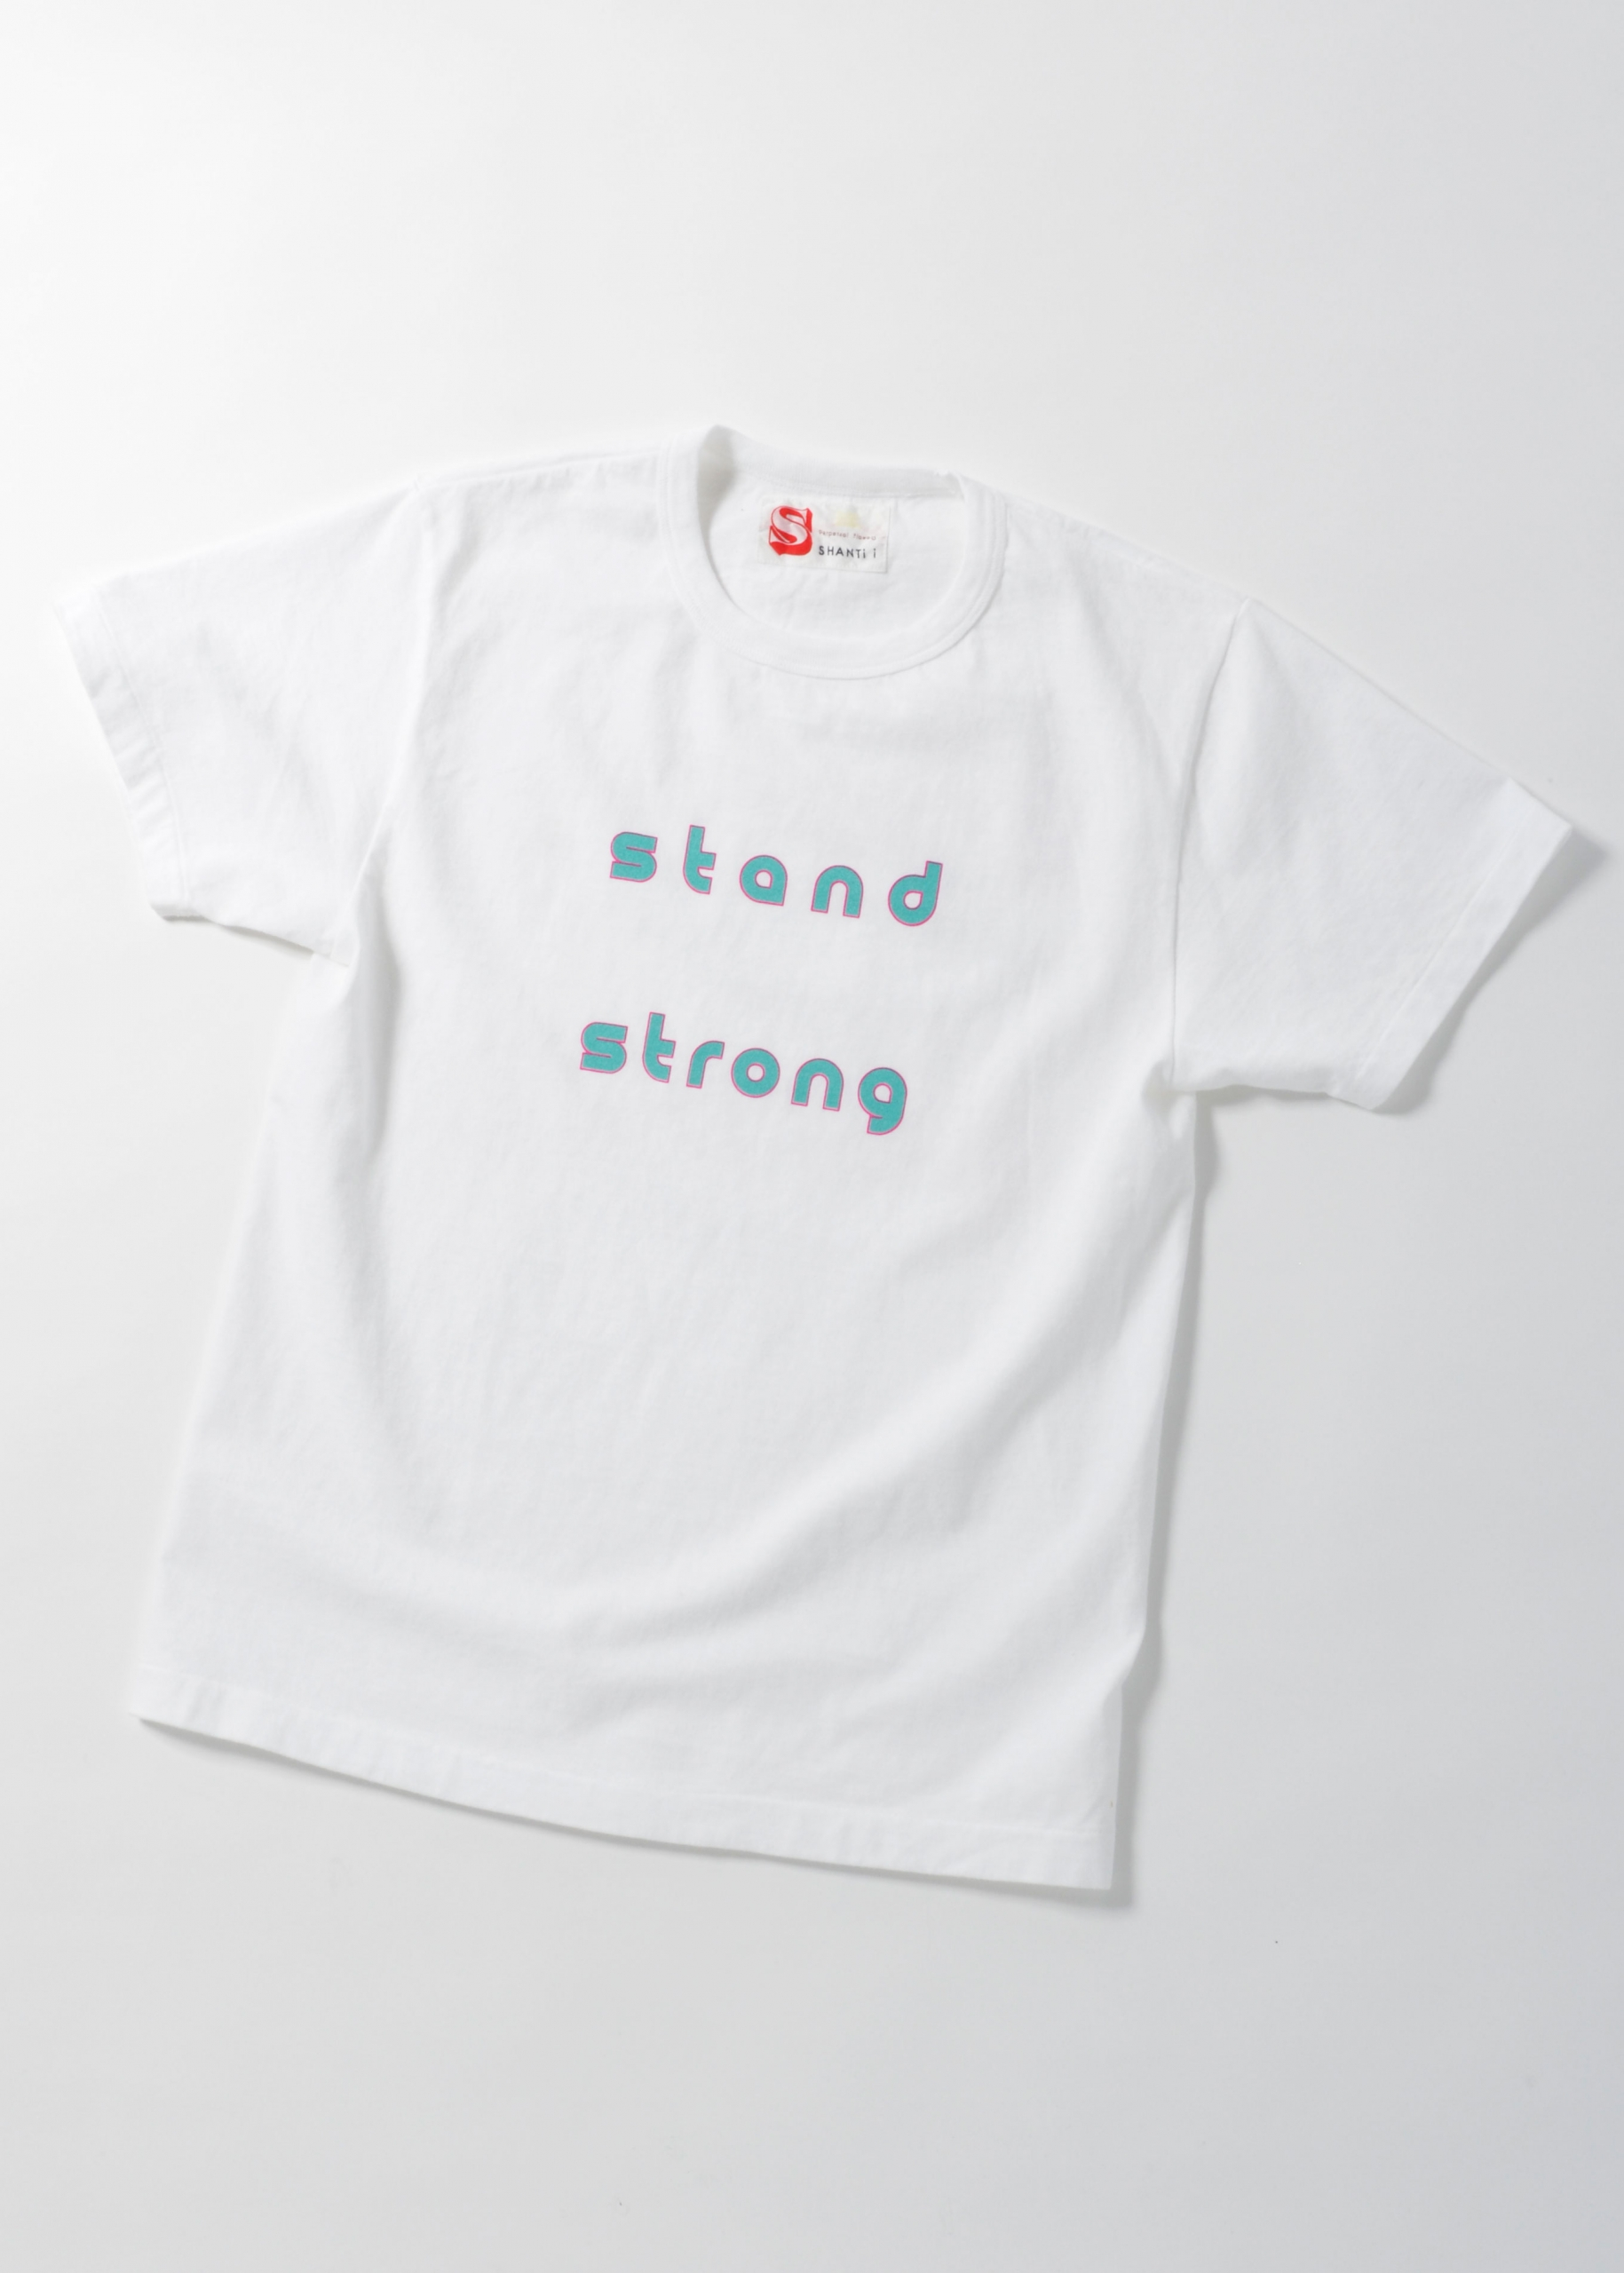 shantii_standstrong_tee2